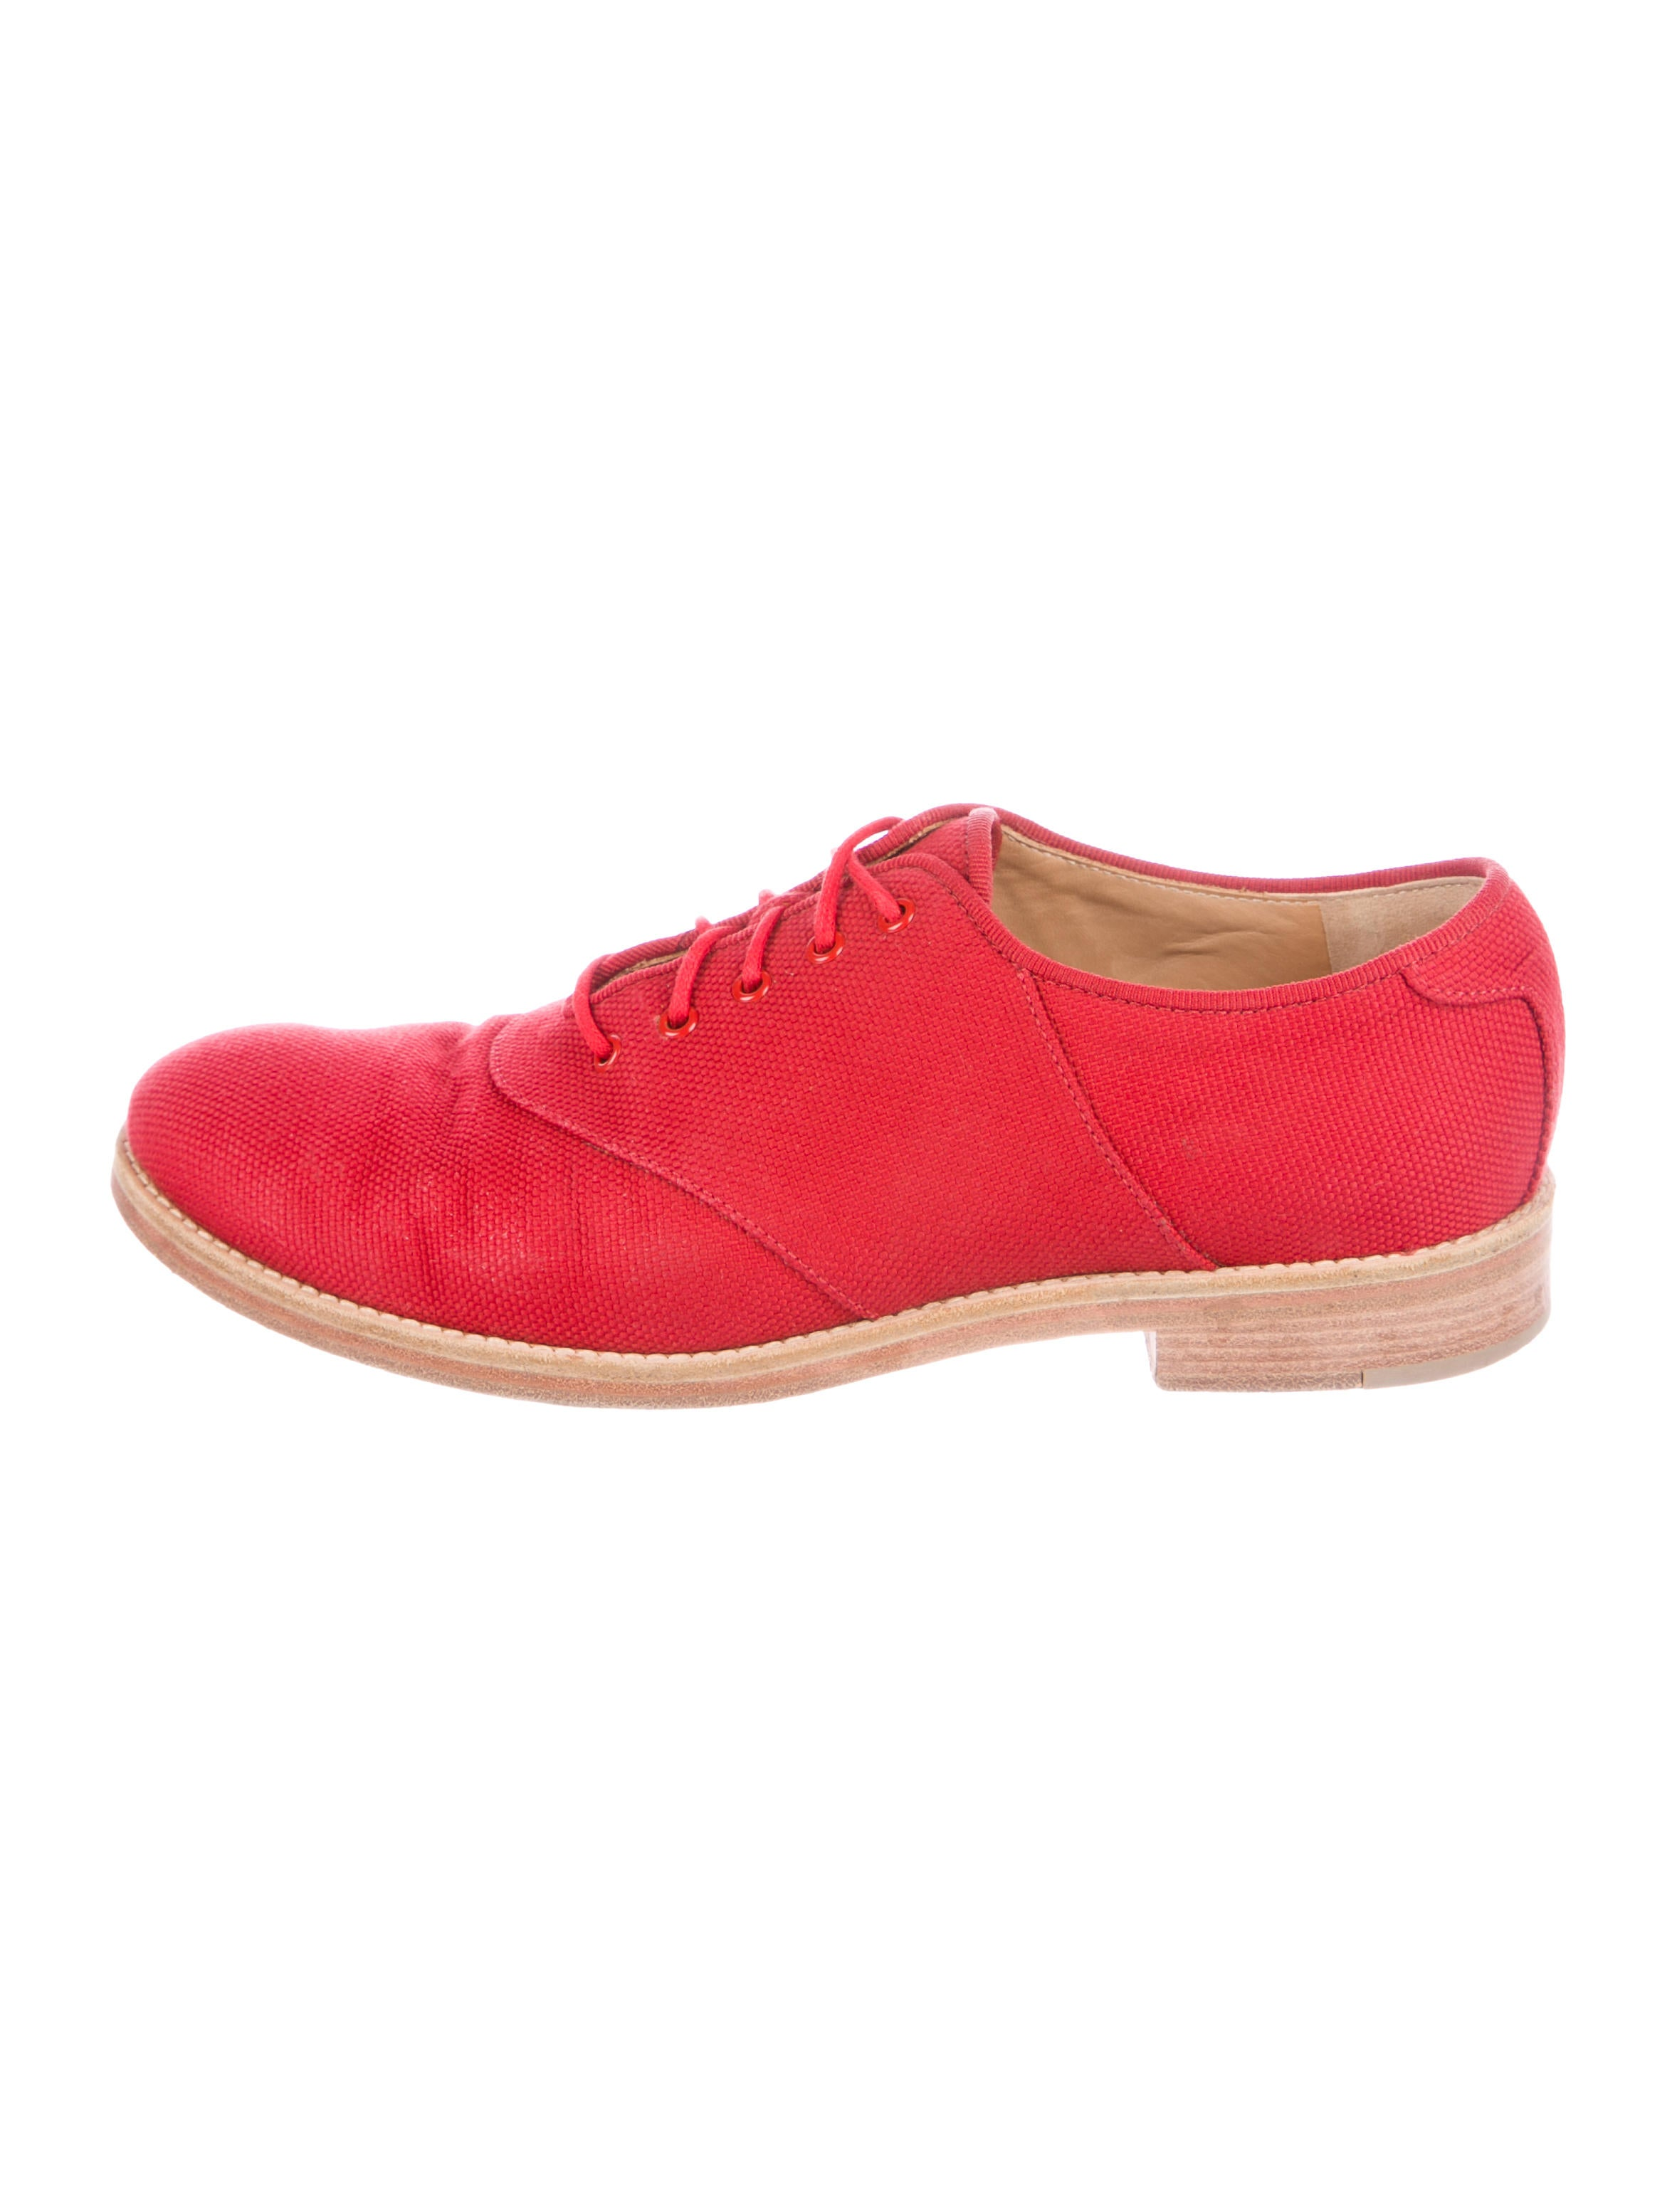 Boy. by Band of Outsiders Leather Round-Toe Oxfords fake sale wholesale price AMCXkOQl